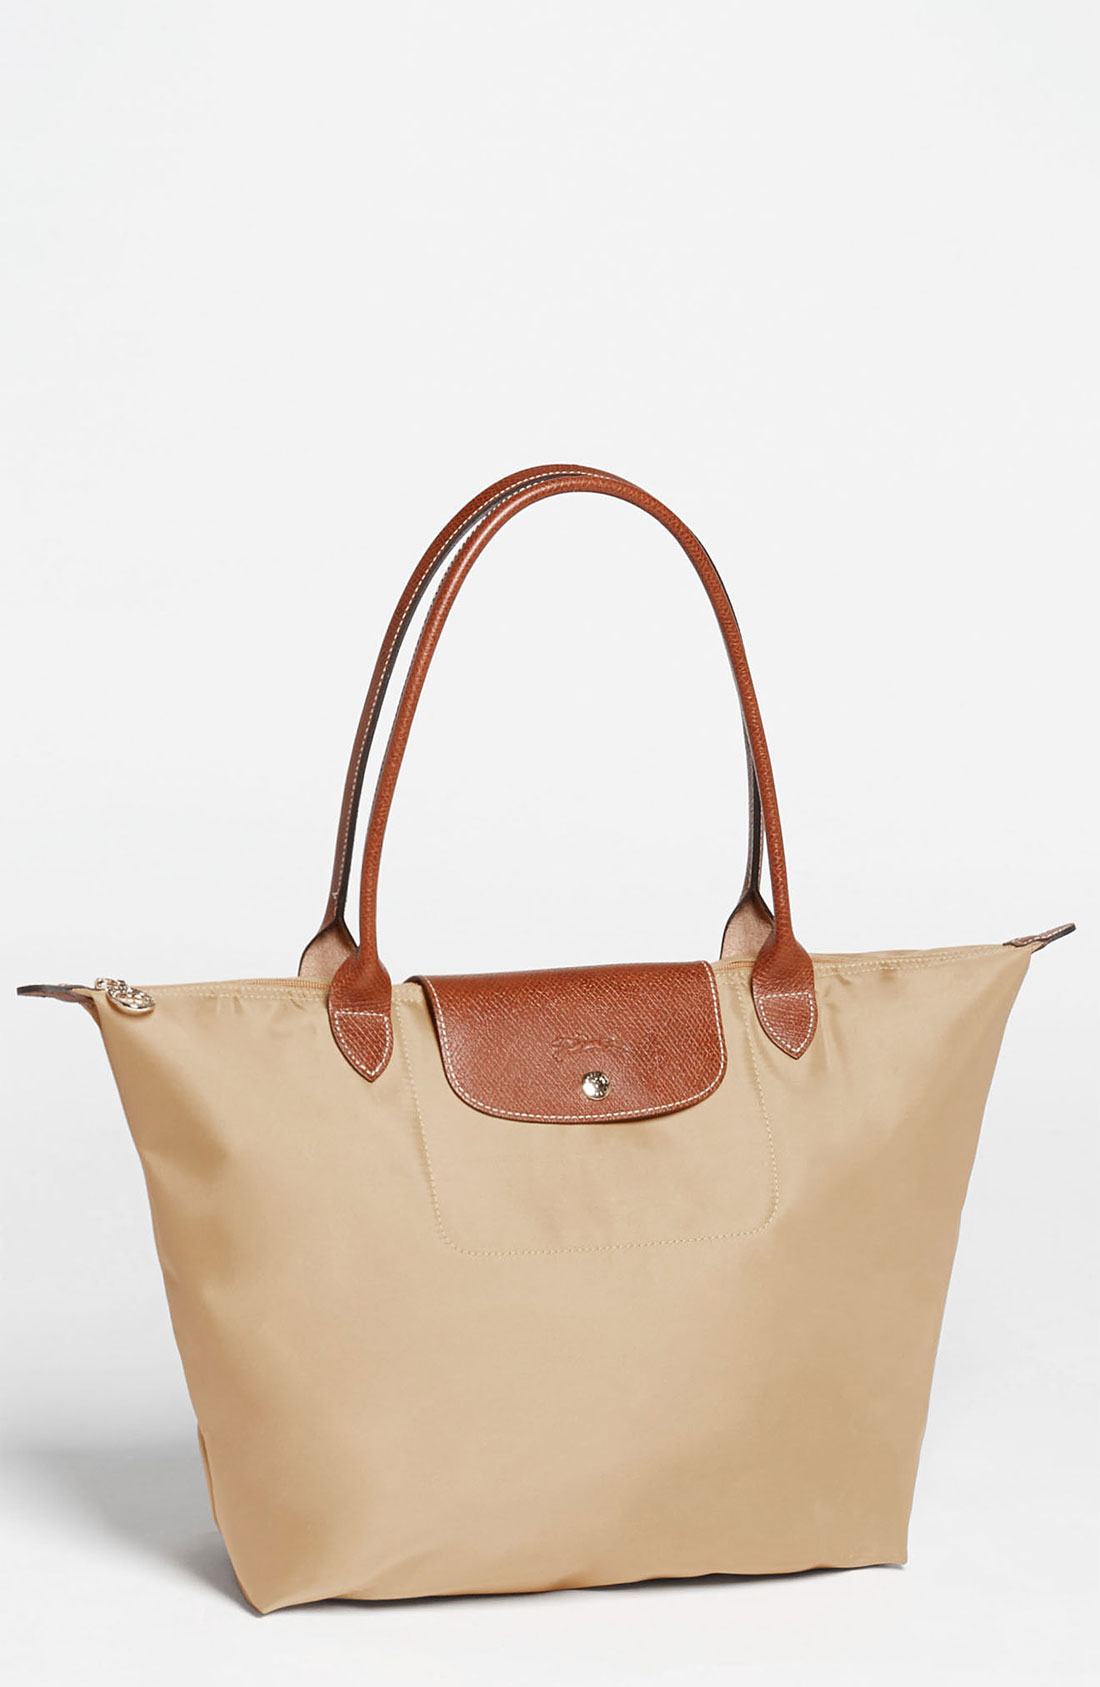 longchamp le pliage large tote in beige natural lyst. Black Bedroom Furniture Sets. Home Design Ideas